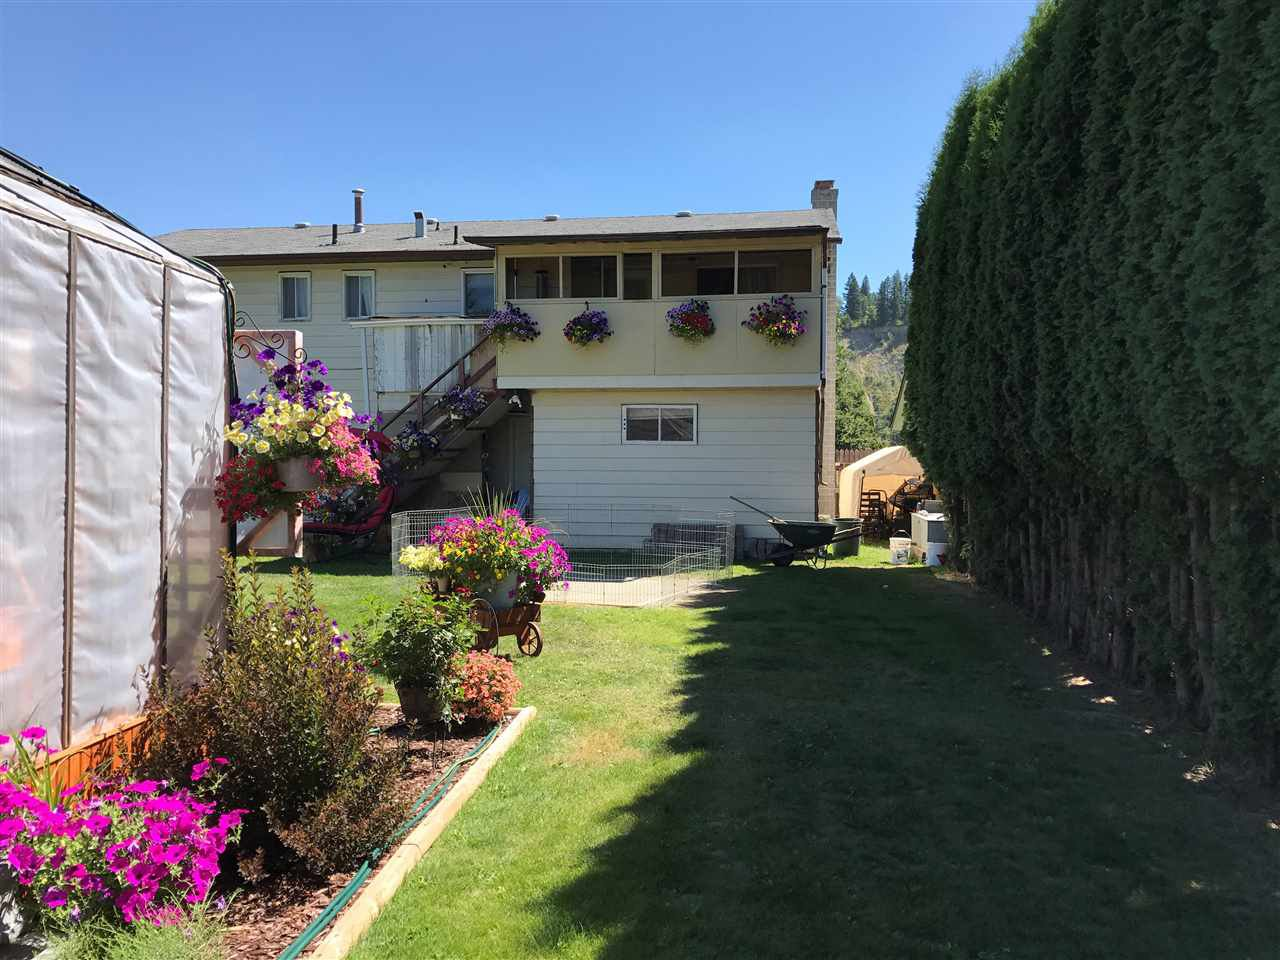 """Photo 3: Photos: 833 W ROLPH Street in Quesnel: Quesnel - Town House for sale in """"WEST QUESNEL"""" (Quesnel (Zone 28))  : MLS®# R2375760"""